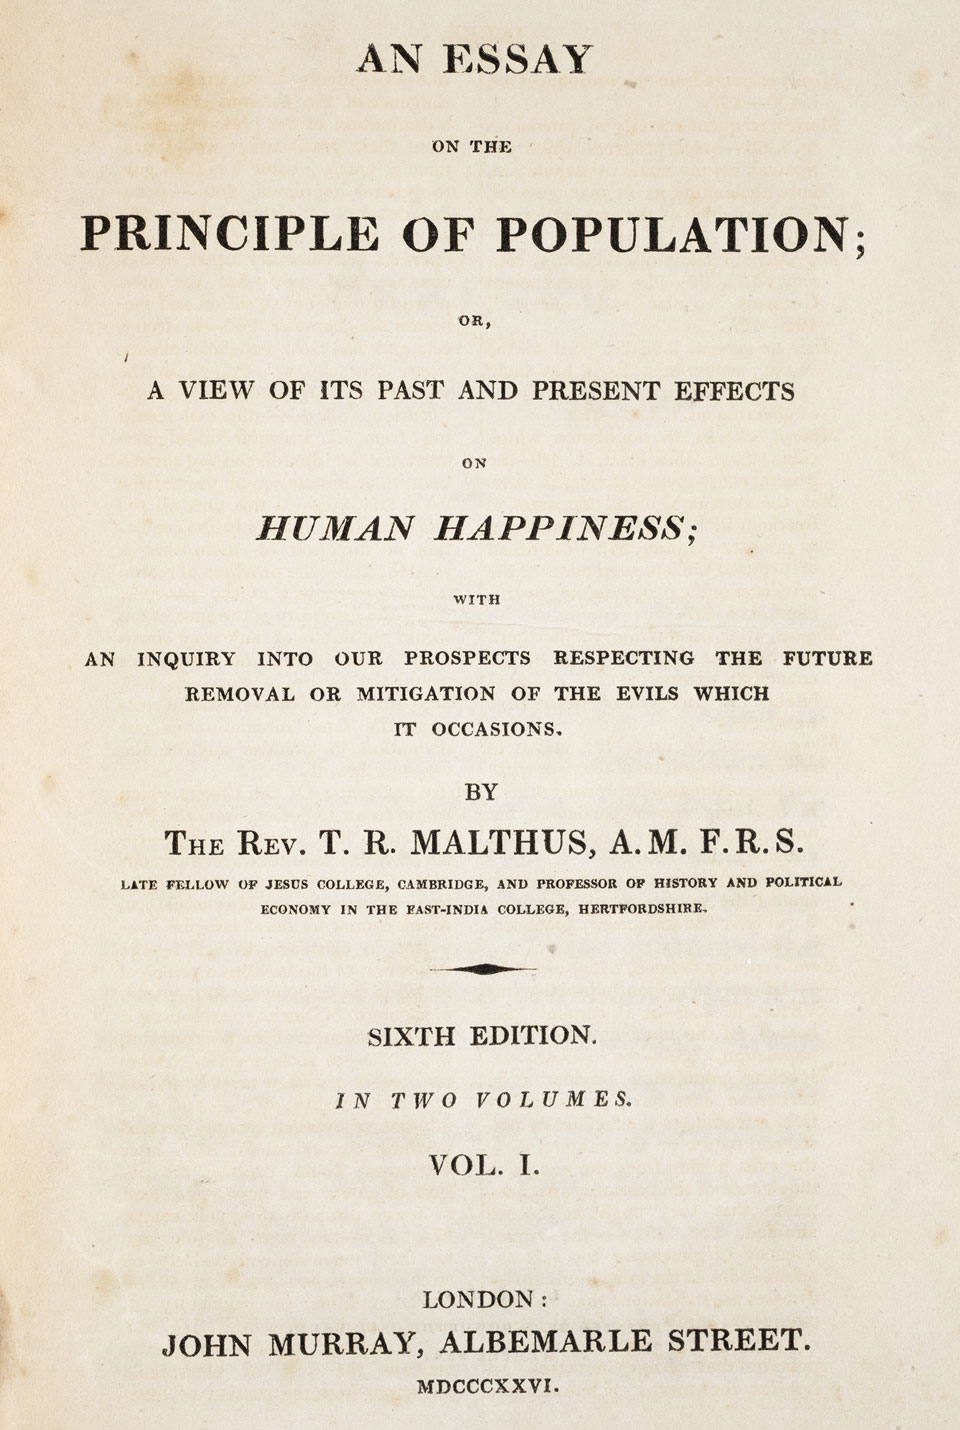 in 1798 thomas robert malthus published an essay on the principle of population An essay on the principle of population (1798) examines the tendency of human numbers to outstrip their resources,  thomas robert malthus.